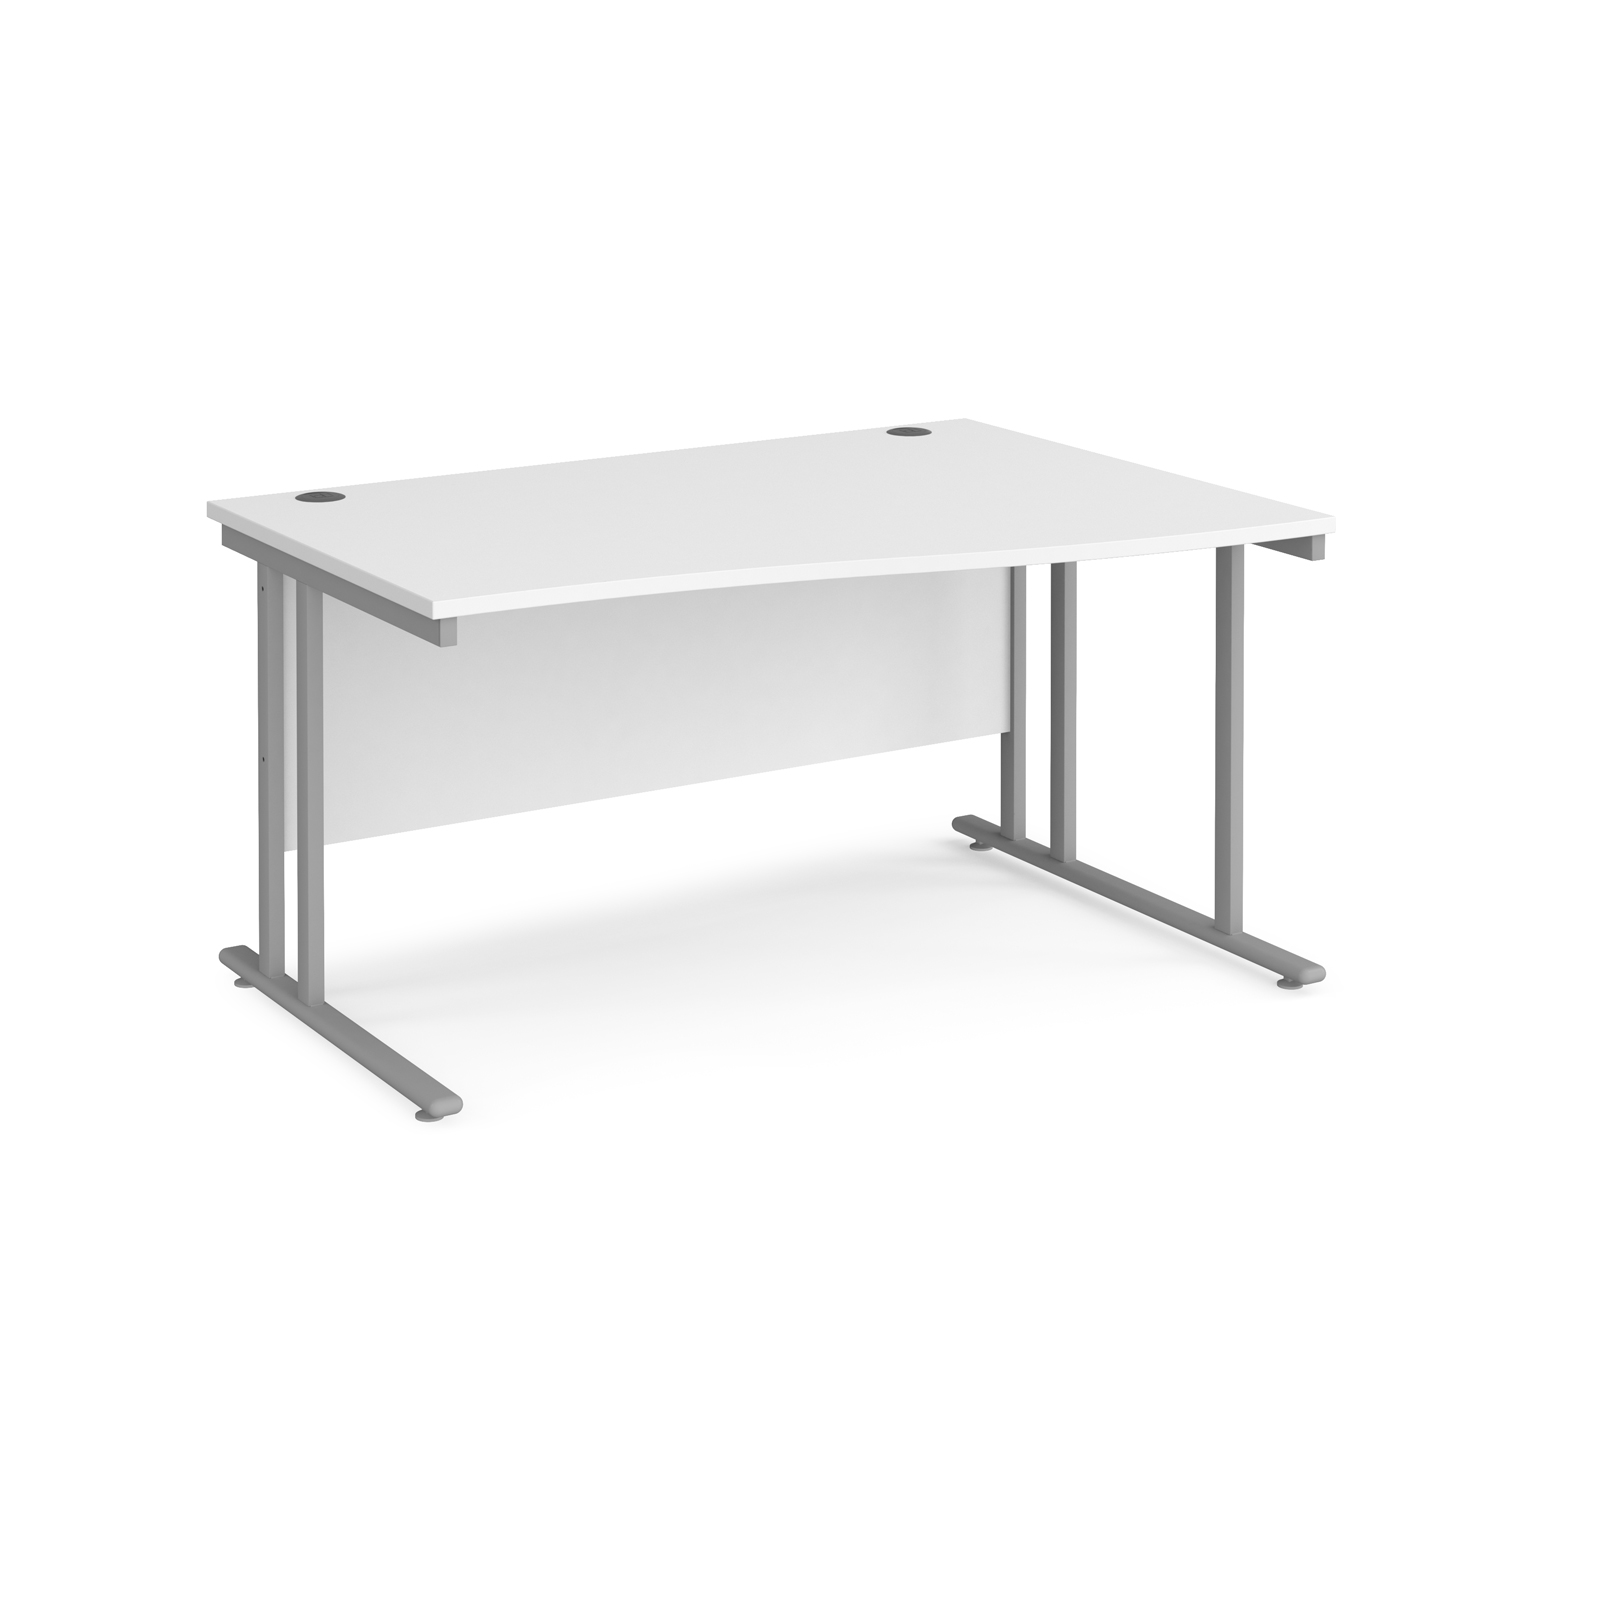 Maestro 25 right hand wave desk 1400mm wide - silver cantilever leg frame, white top